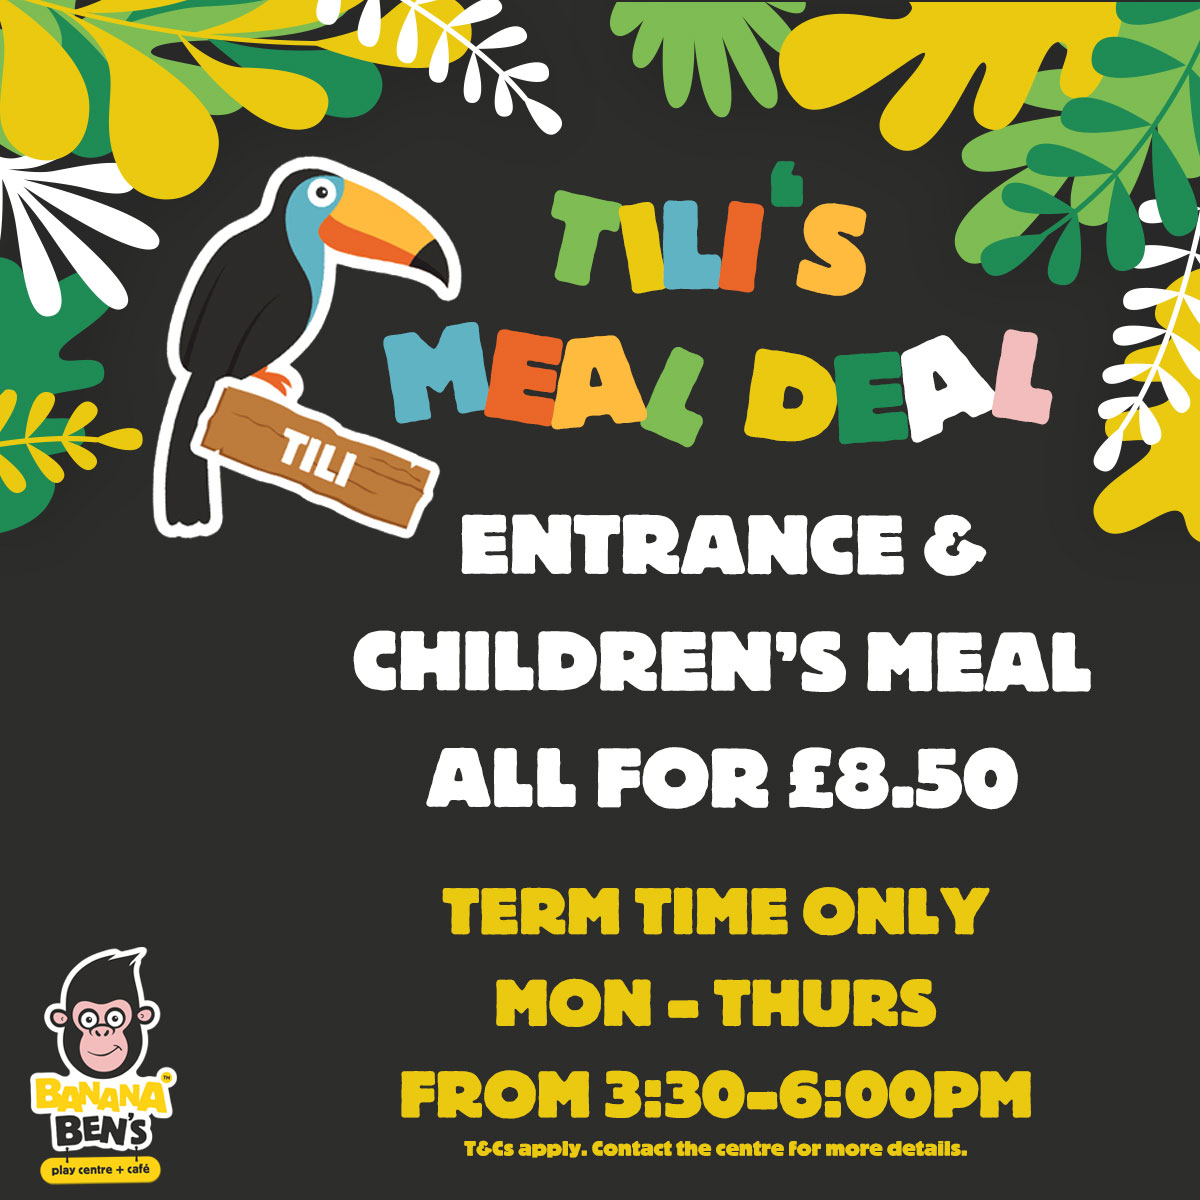 Tili's Meal Deal - Entrance, Hot Meal & a Drink all for £7.95. Monday - Thursday from 3PM. T&Cs apply. Contact the centre for more details.